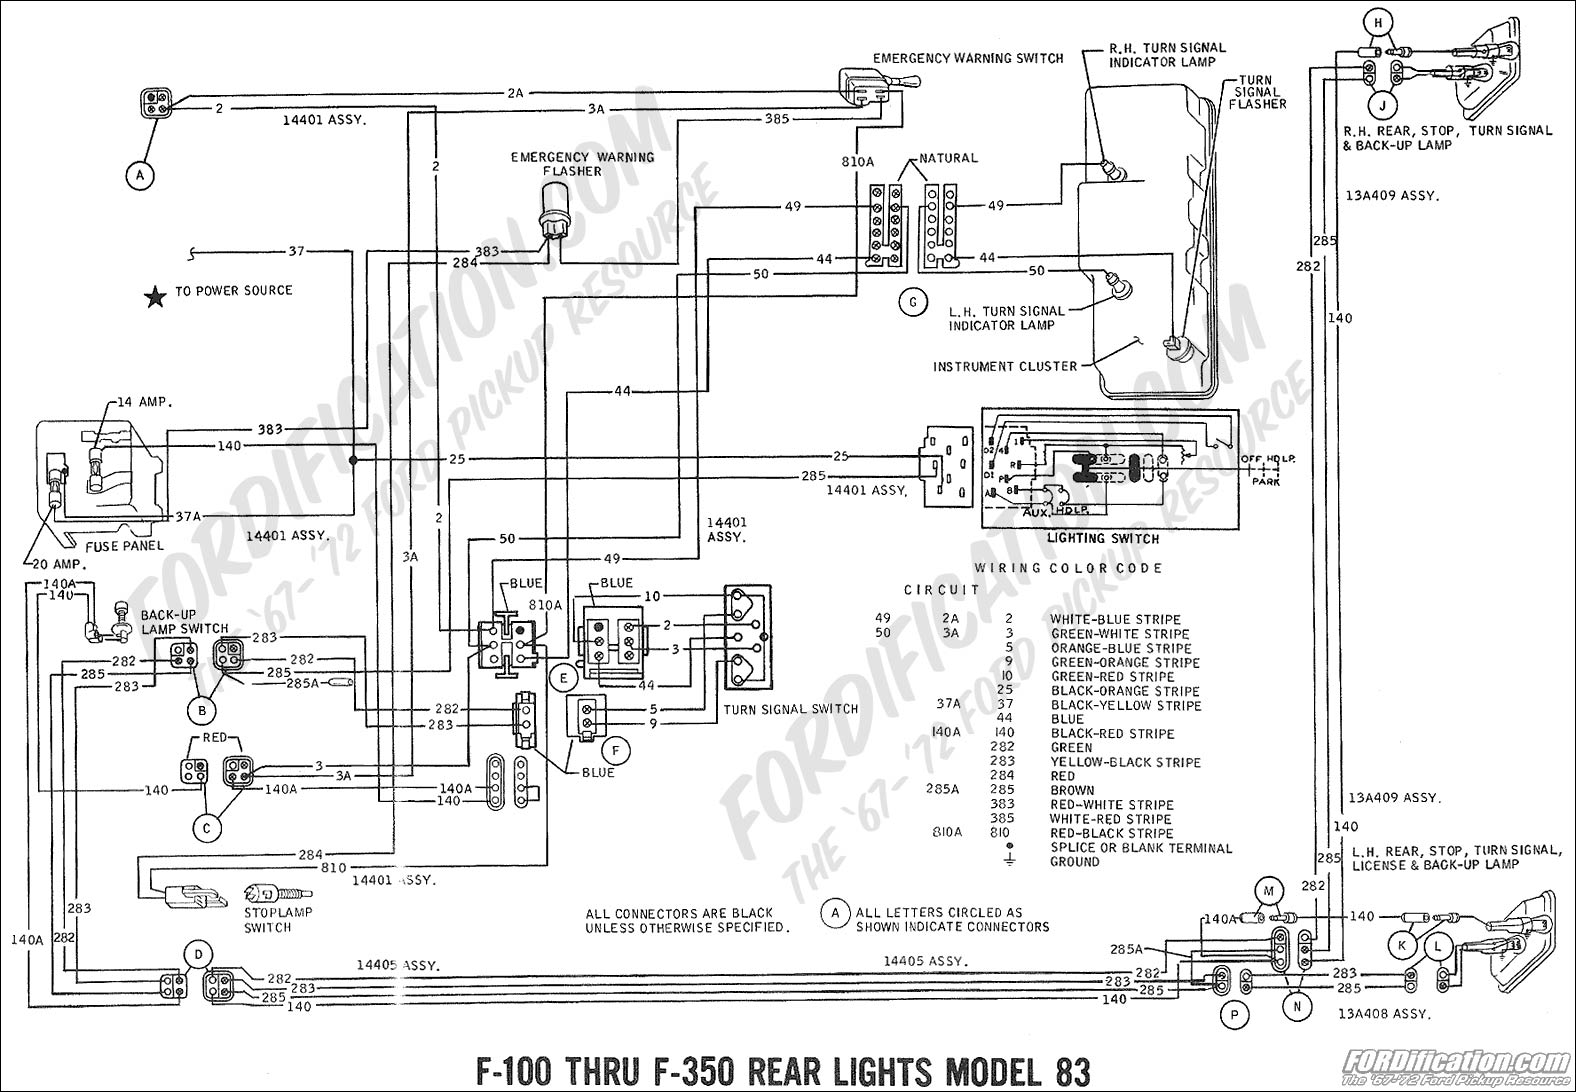 69 f100 wiring diagram   22 wiring diagram images